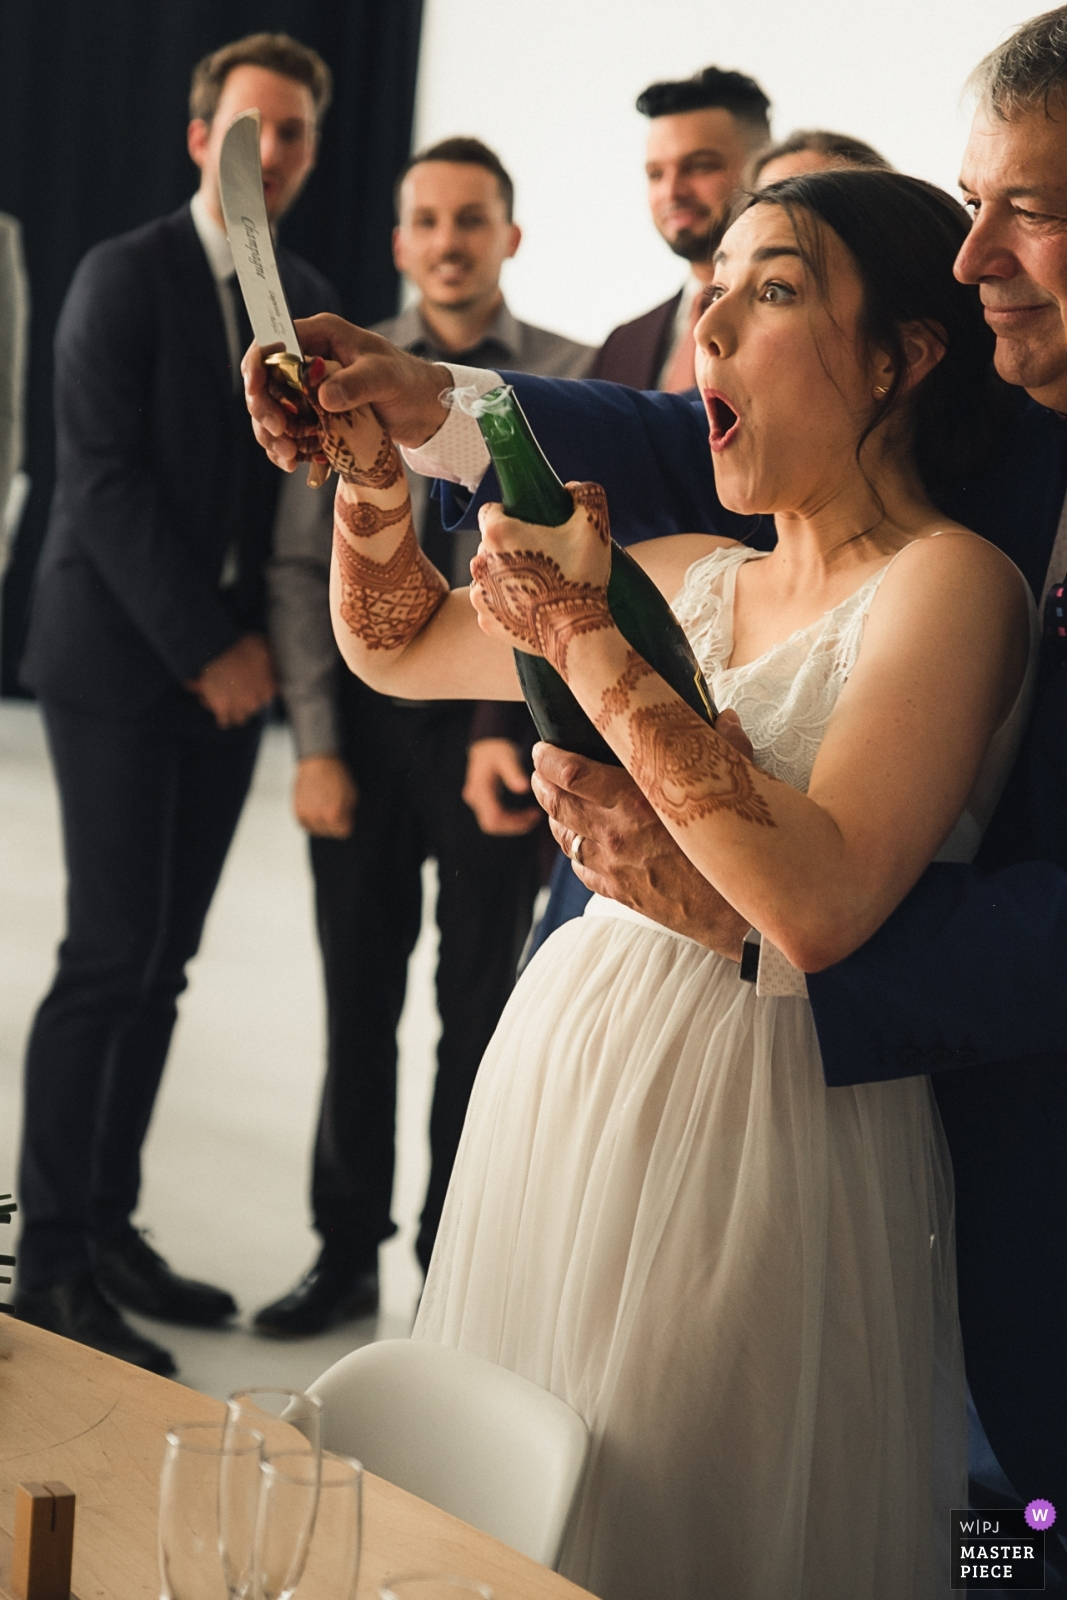 She managed to open the champagne with a knife (Part II) - Montreal, Quebec Wedding Photography -  | L'Eloi in Montreal Canada